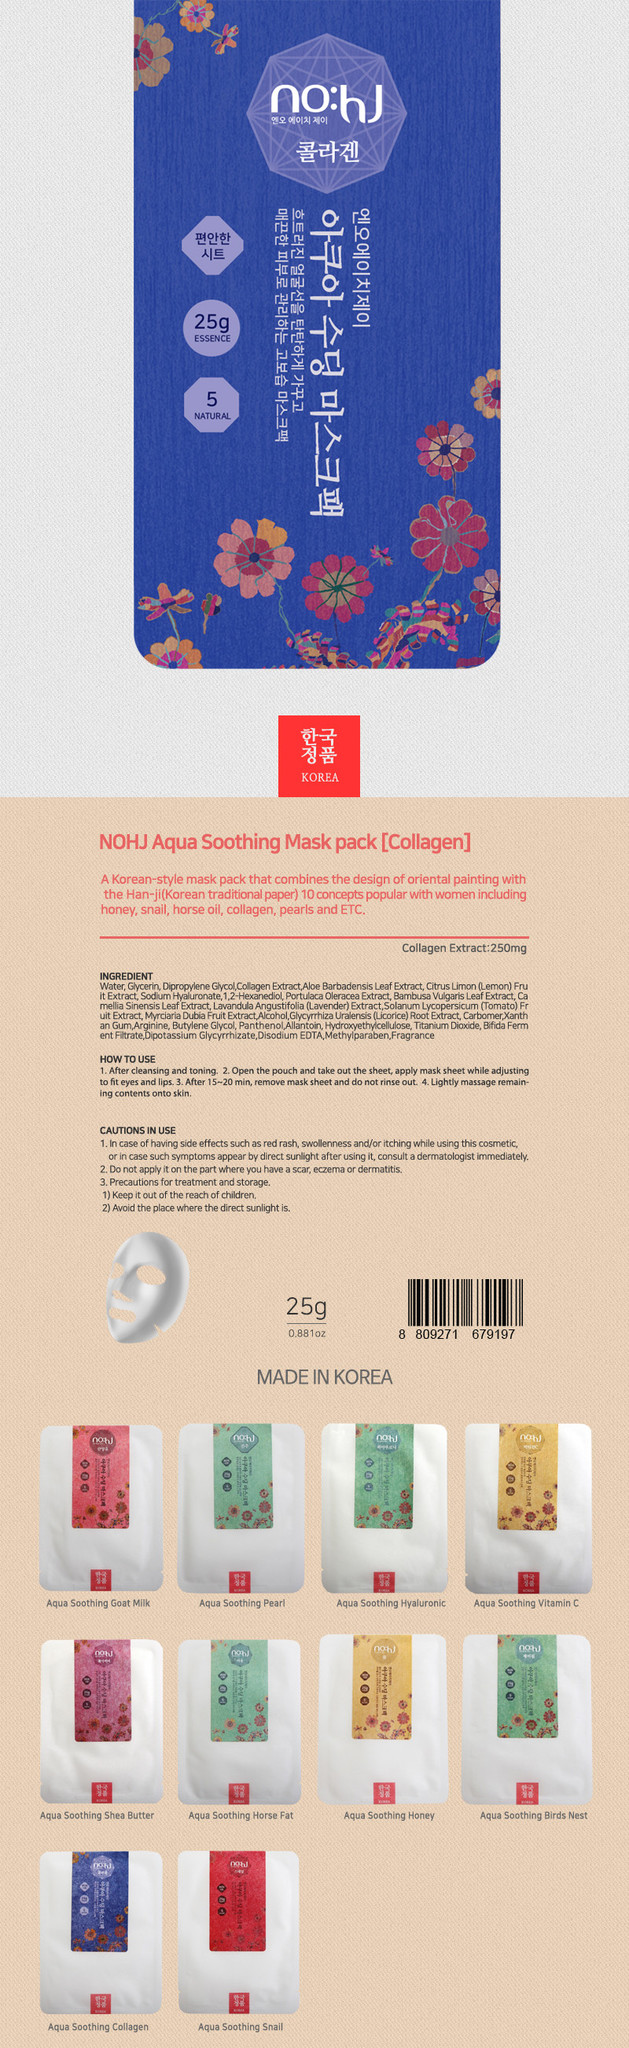 Aqua Soothing Mask pack [Collagen]-2